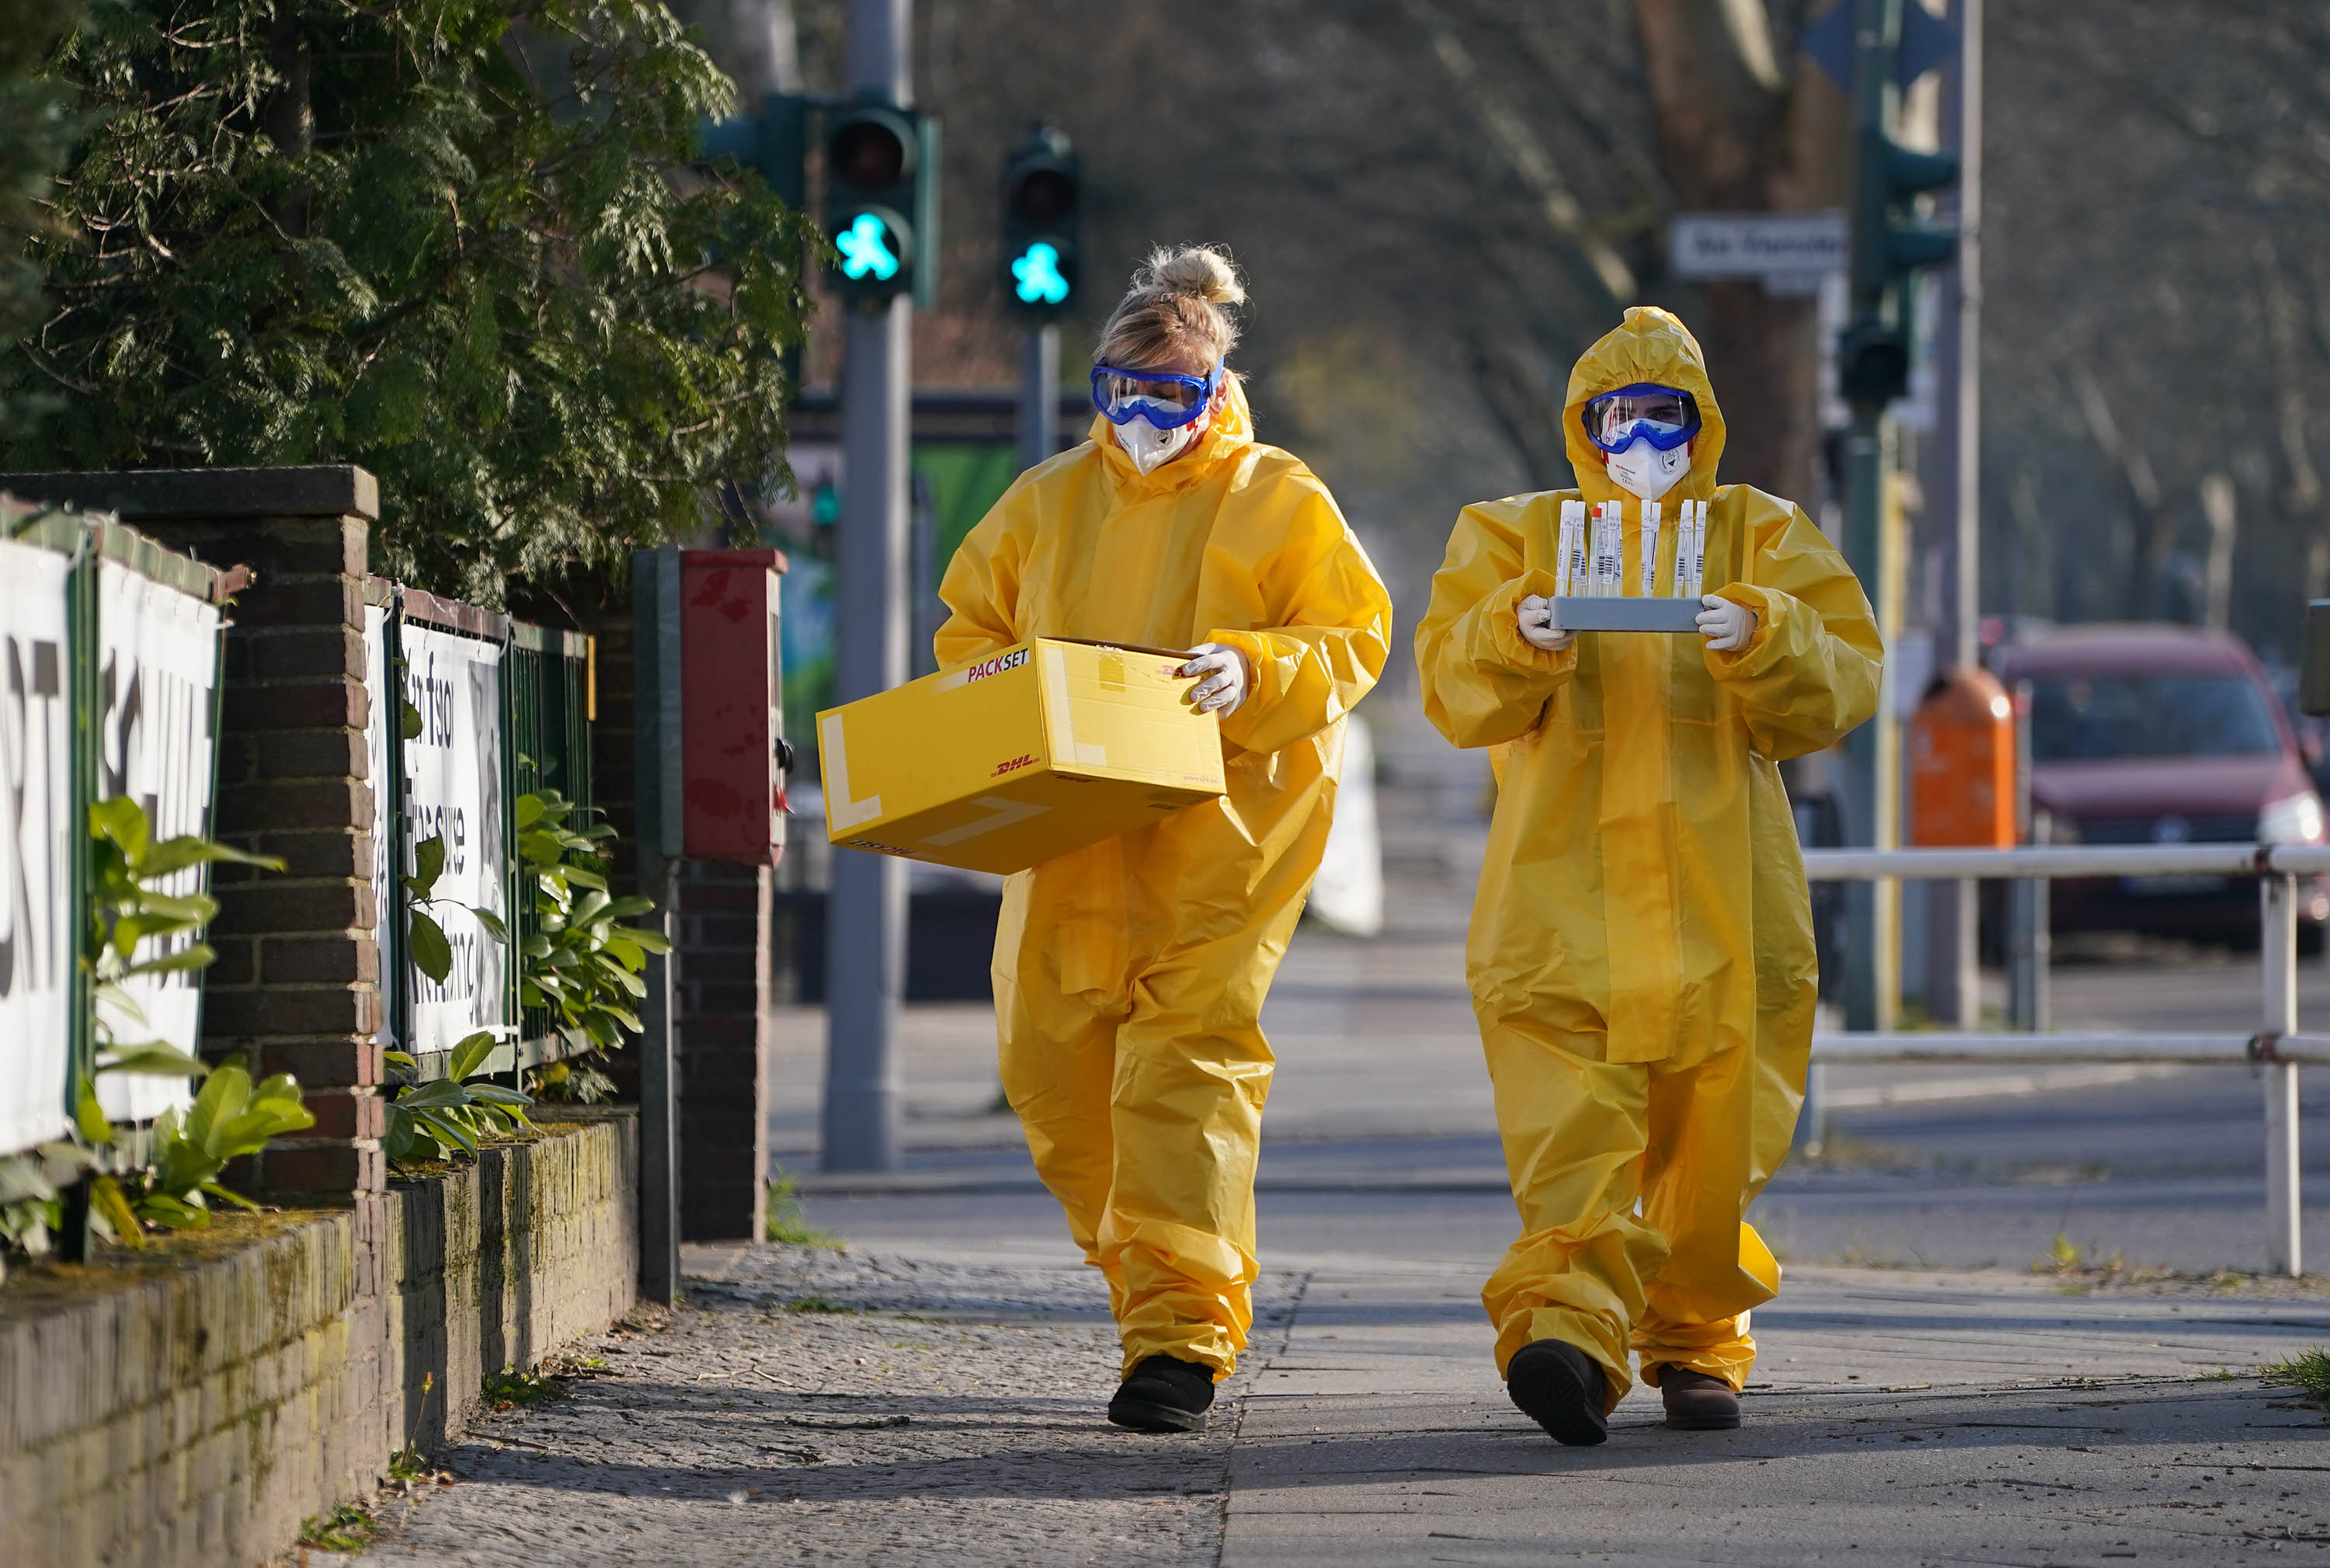 Workers return to a medical practice after taking Covid-19 samples in Berlin, Germany, on March 27, 2020.